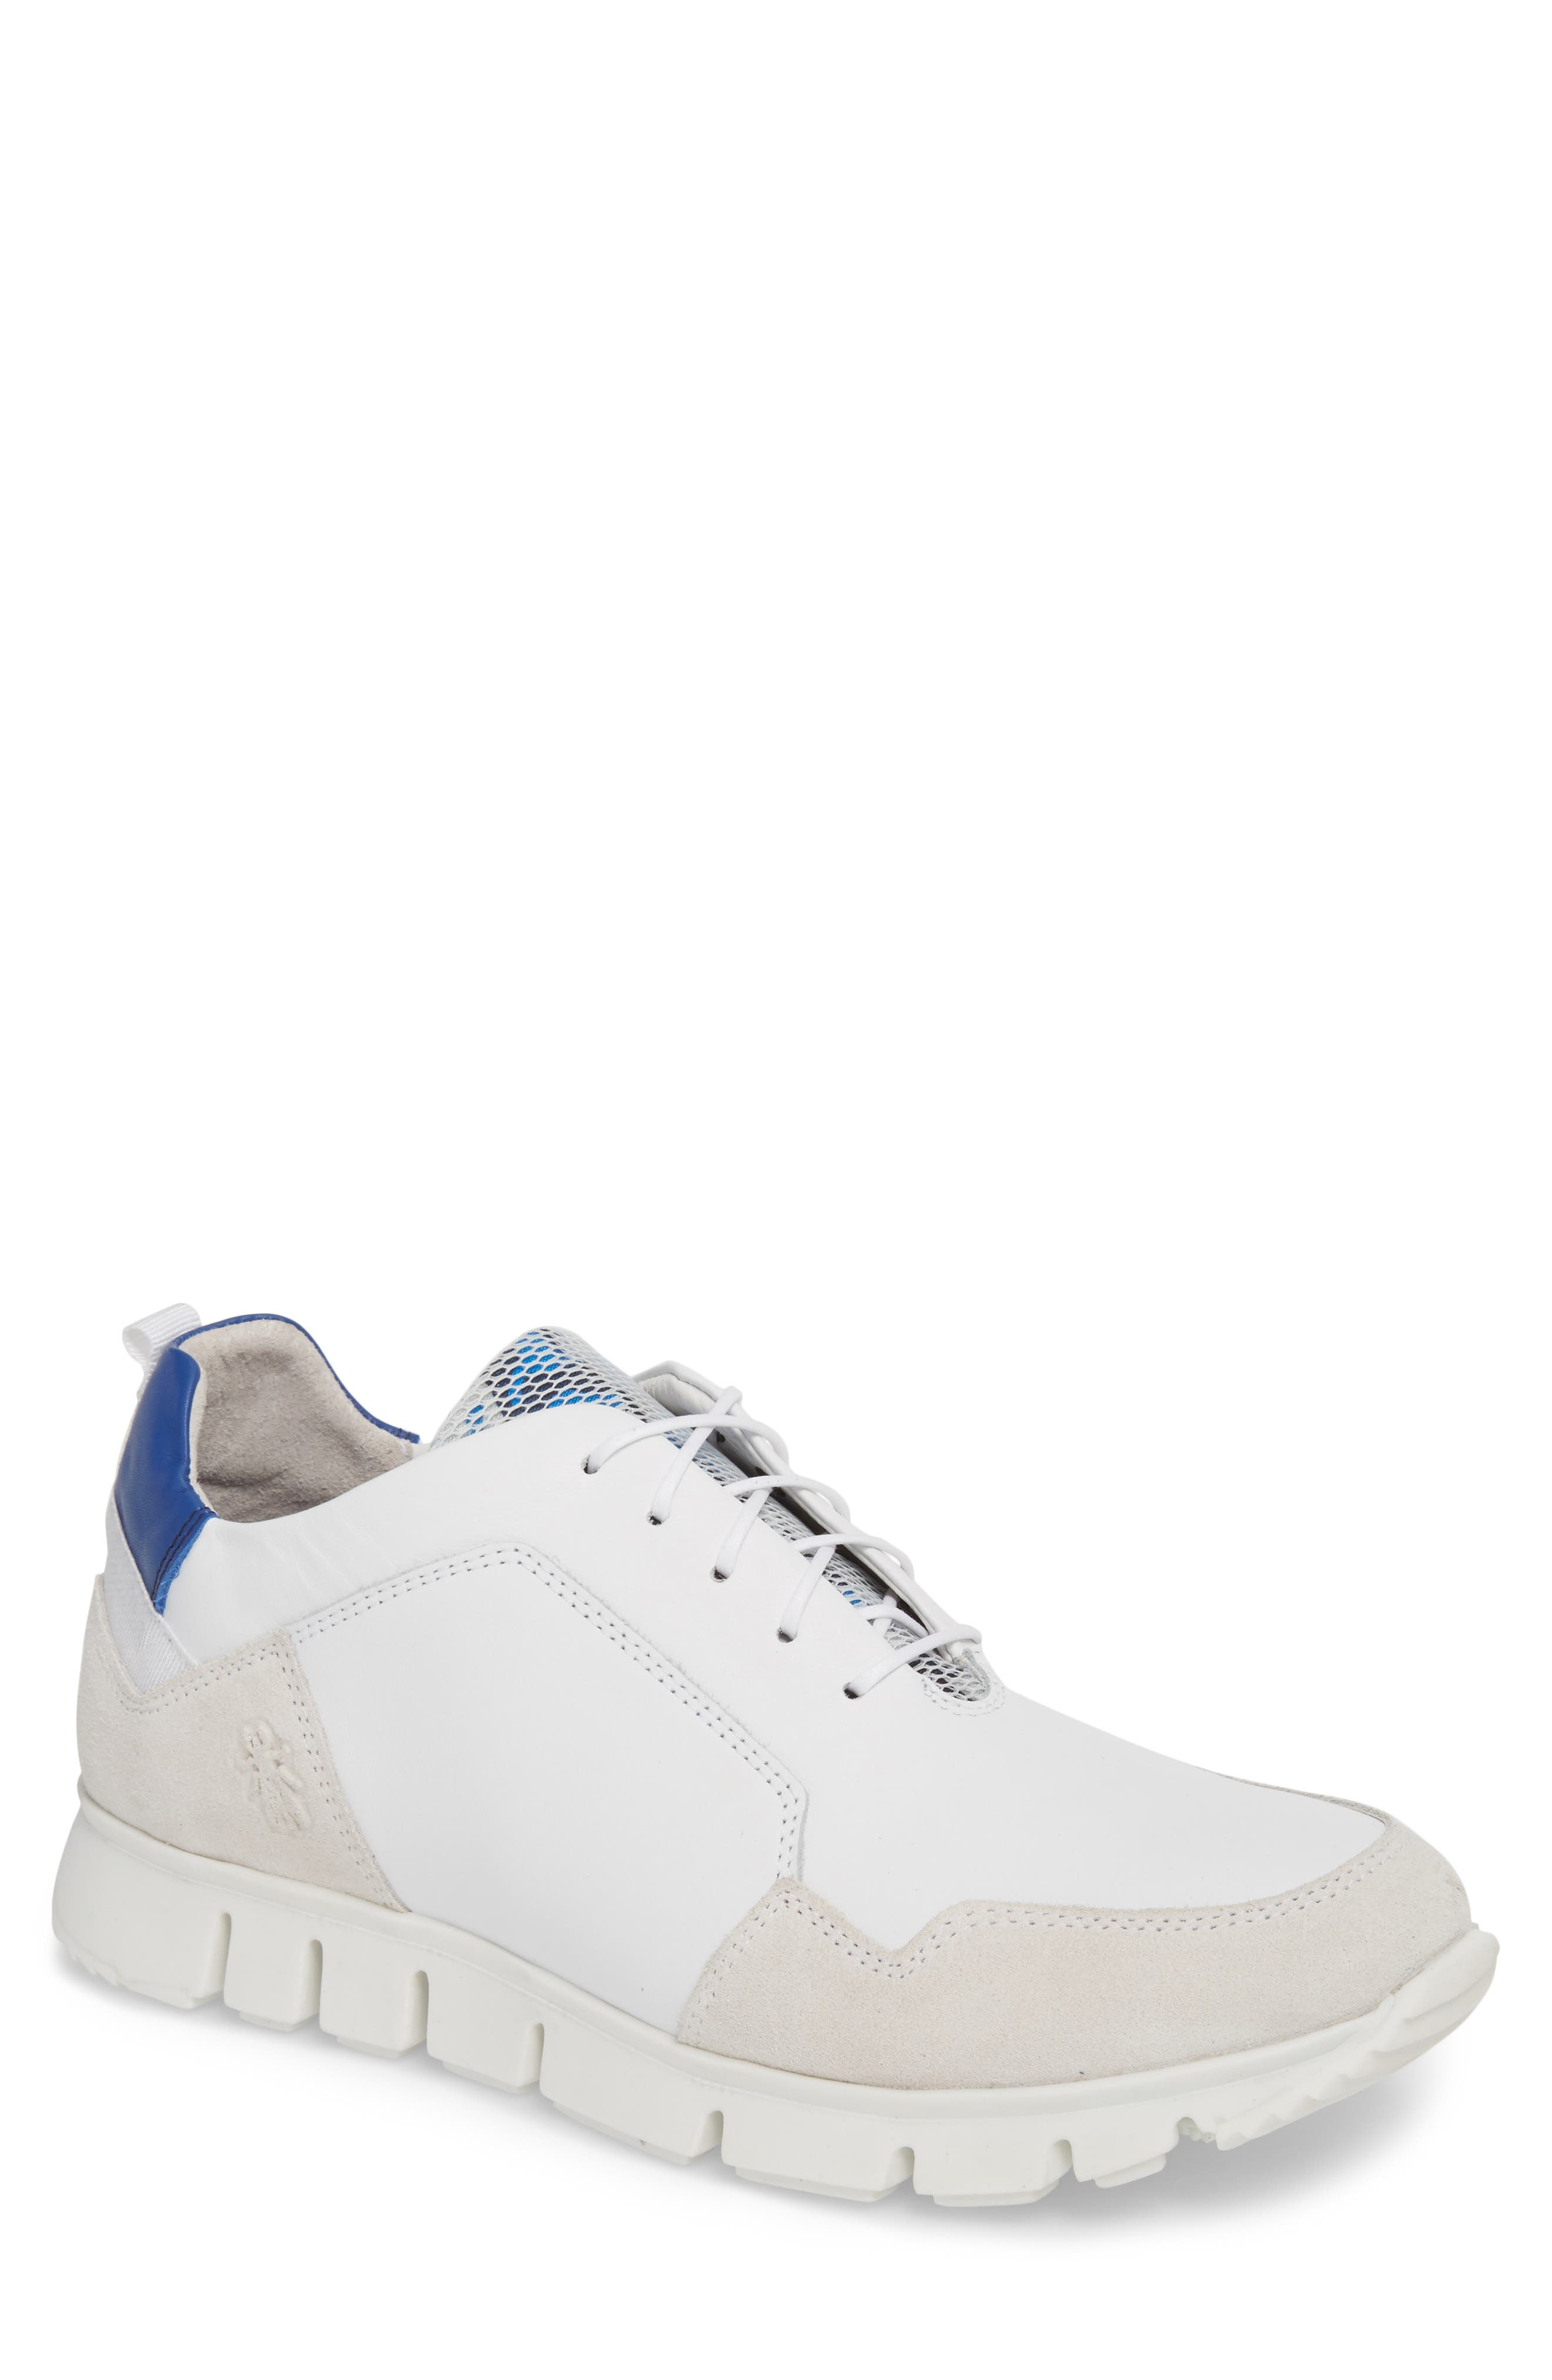 Sild Low Top Sneaker,                             Main thumbnail 1, color,                             WHITE SUEDE/ LEATHER